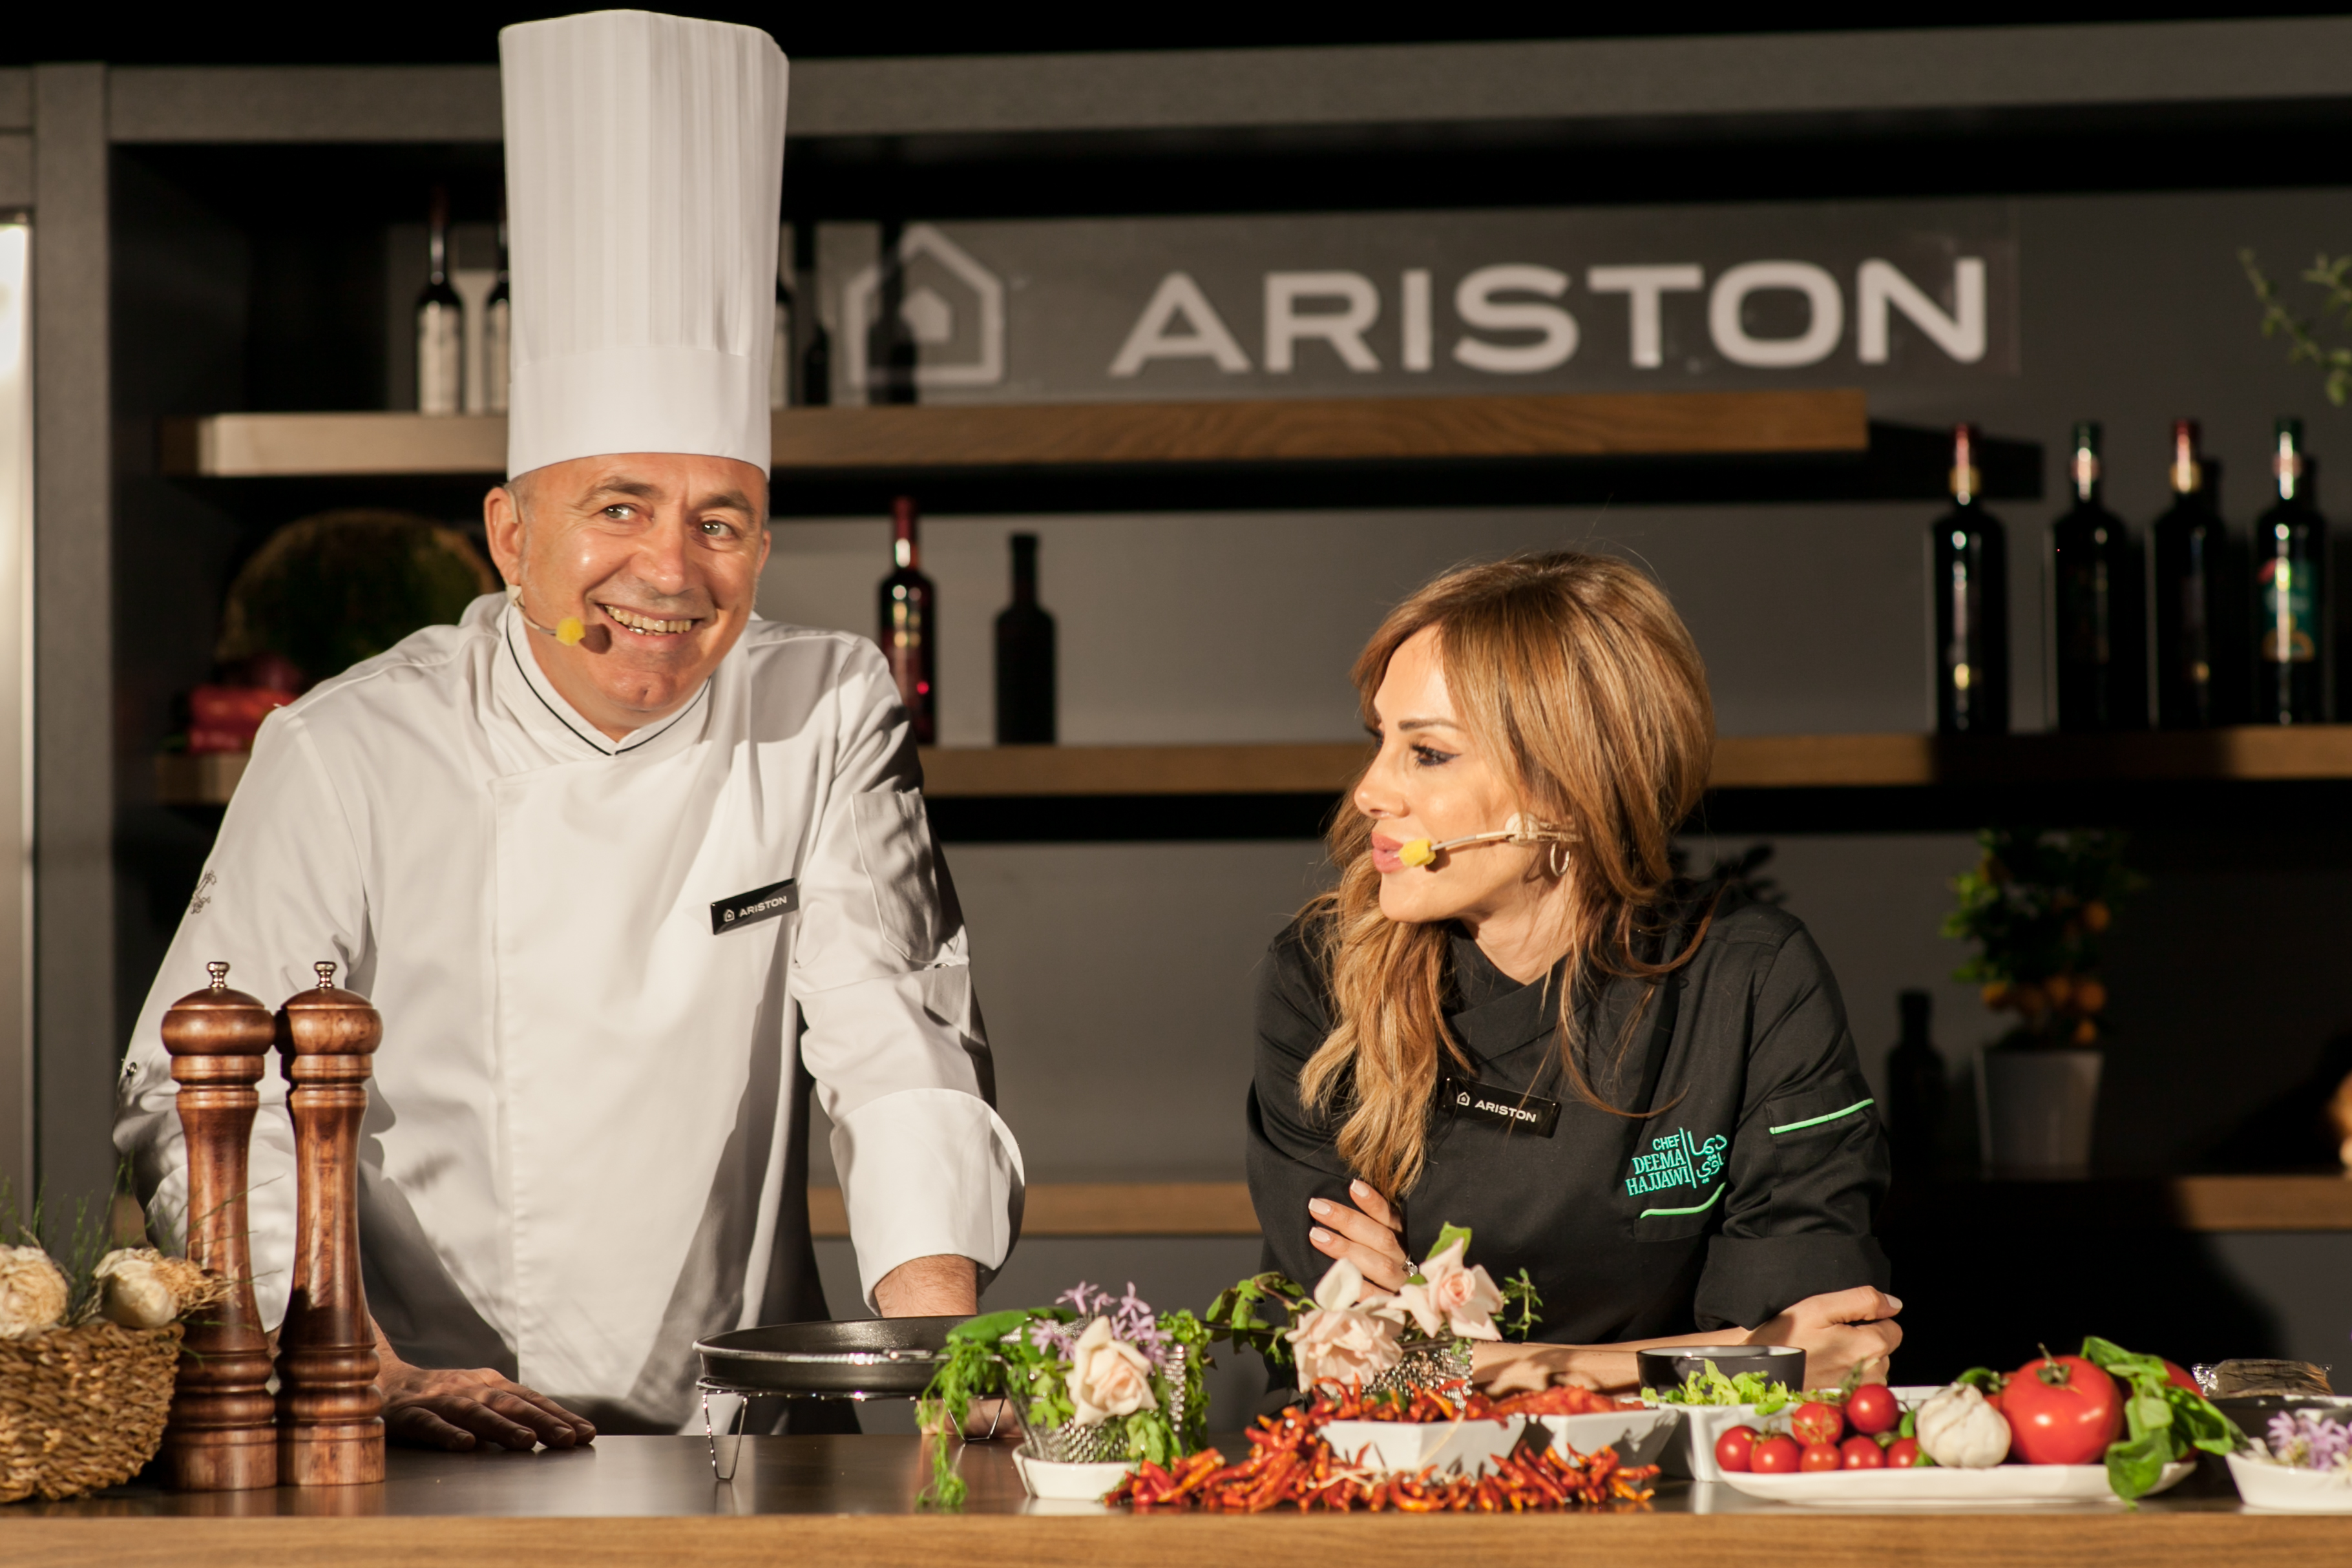 Whirlpool Corporation unveils new kitchen concept for its Ariston brand